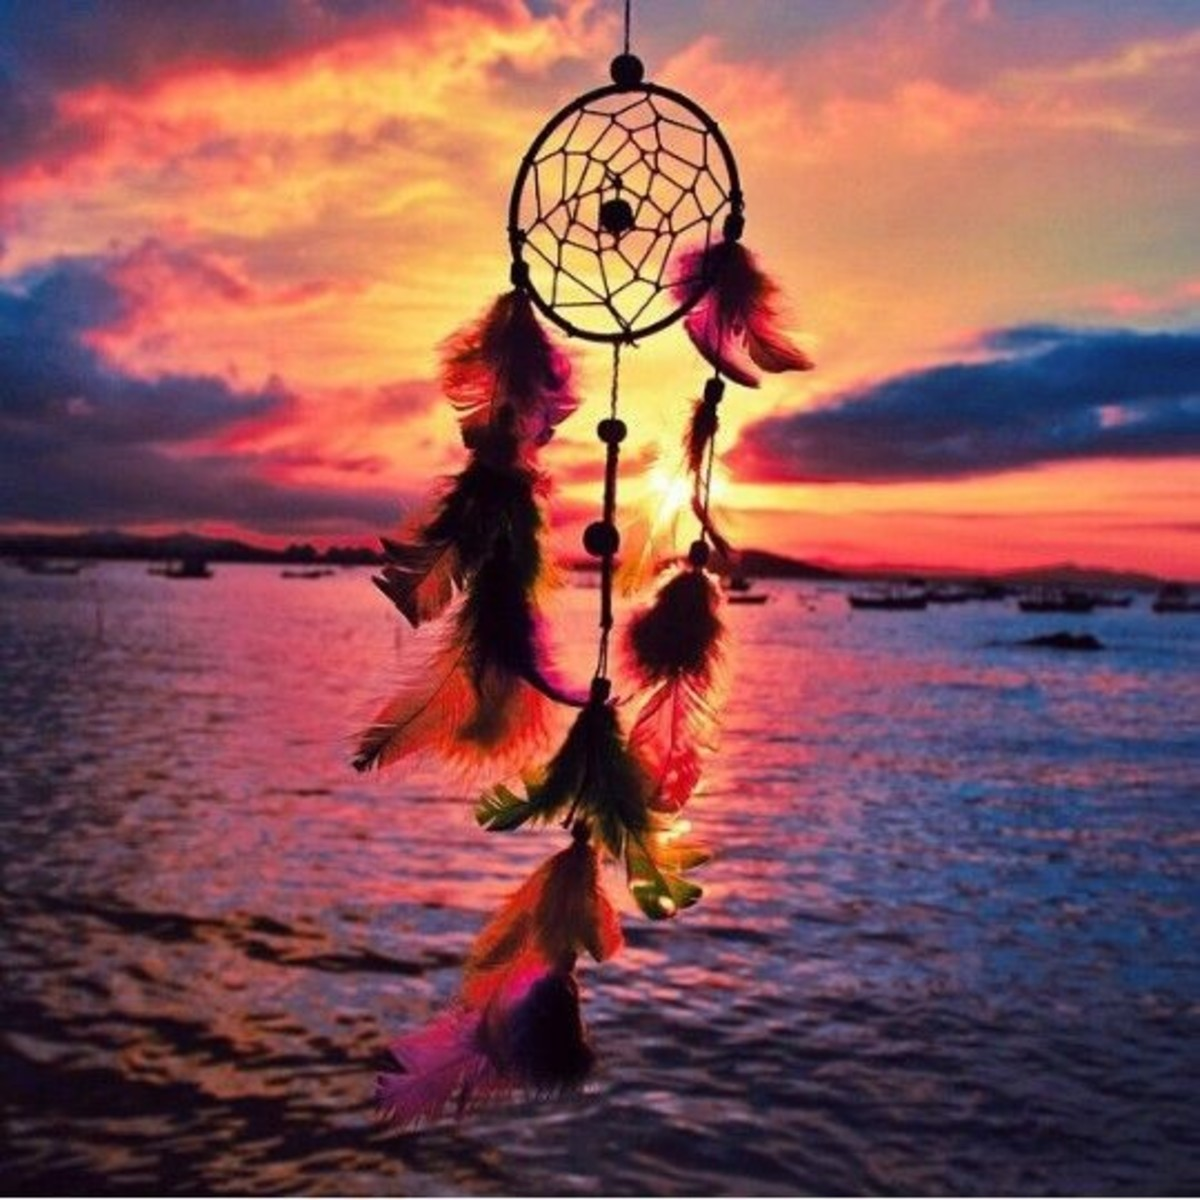 The Dream Catcher - Chapter 2